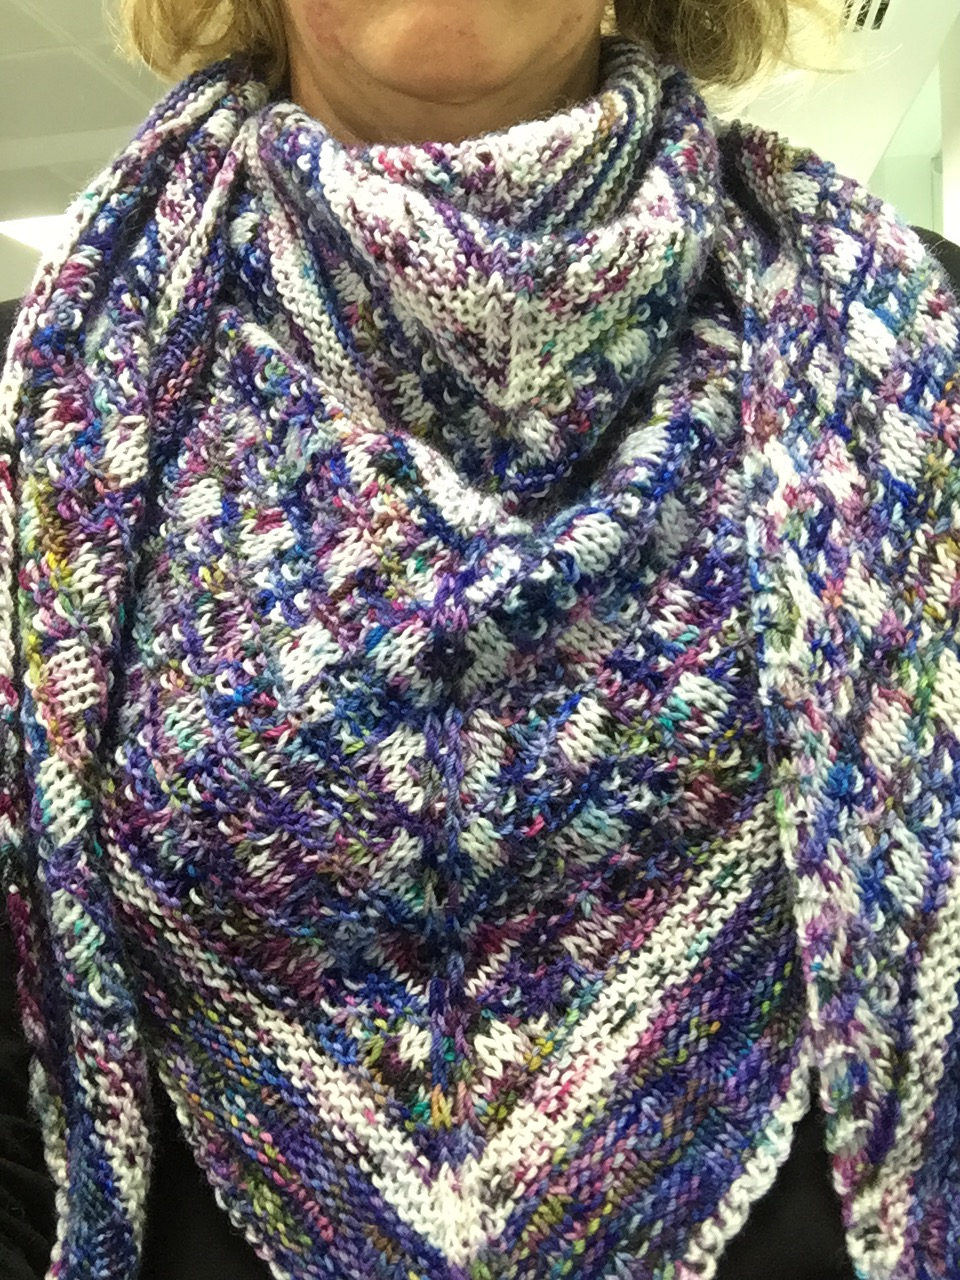 Rachel's finished Study Hall shawl in all it's speckle-y gorgeousness!